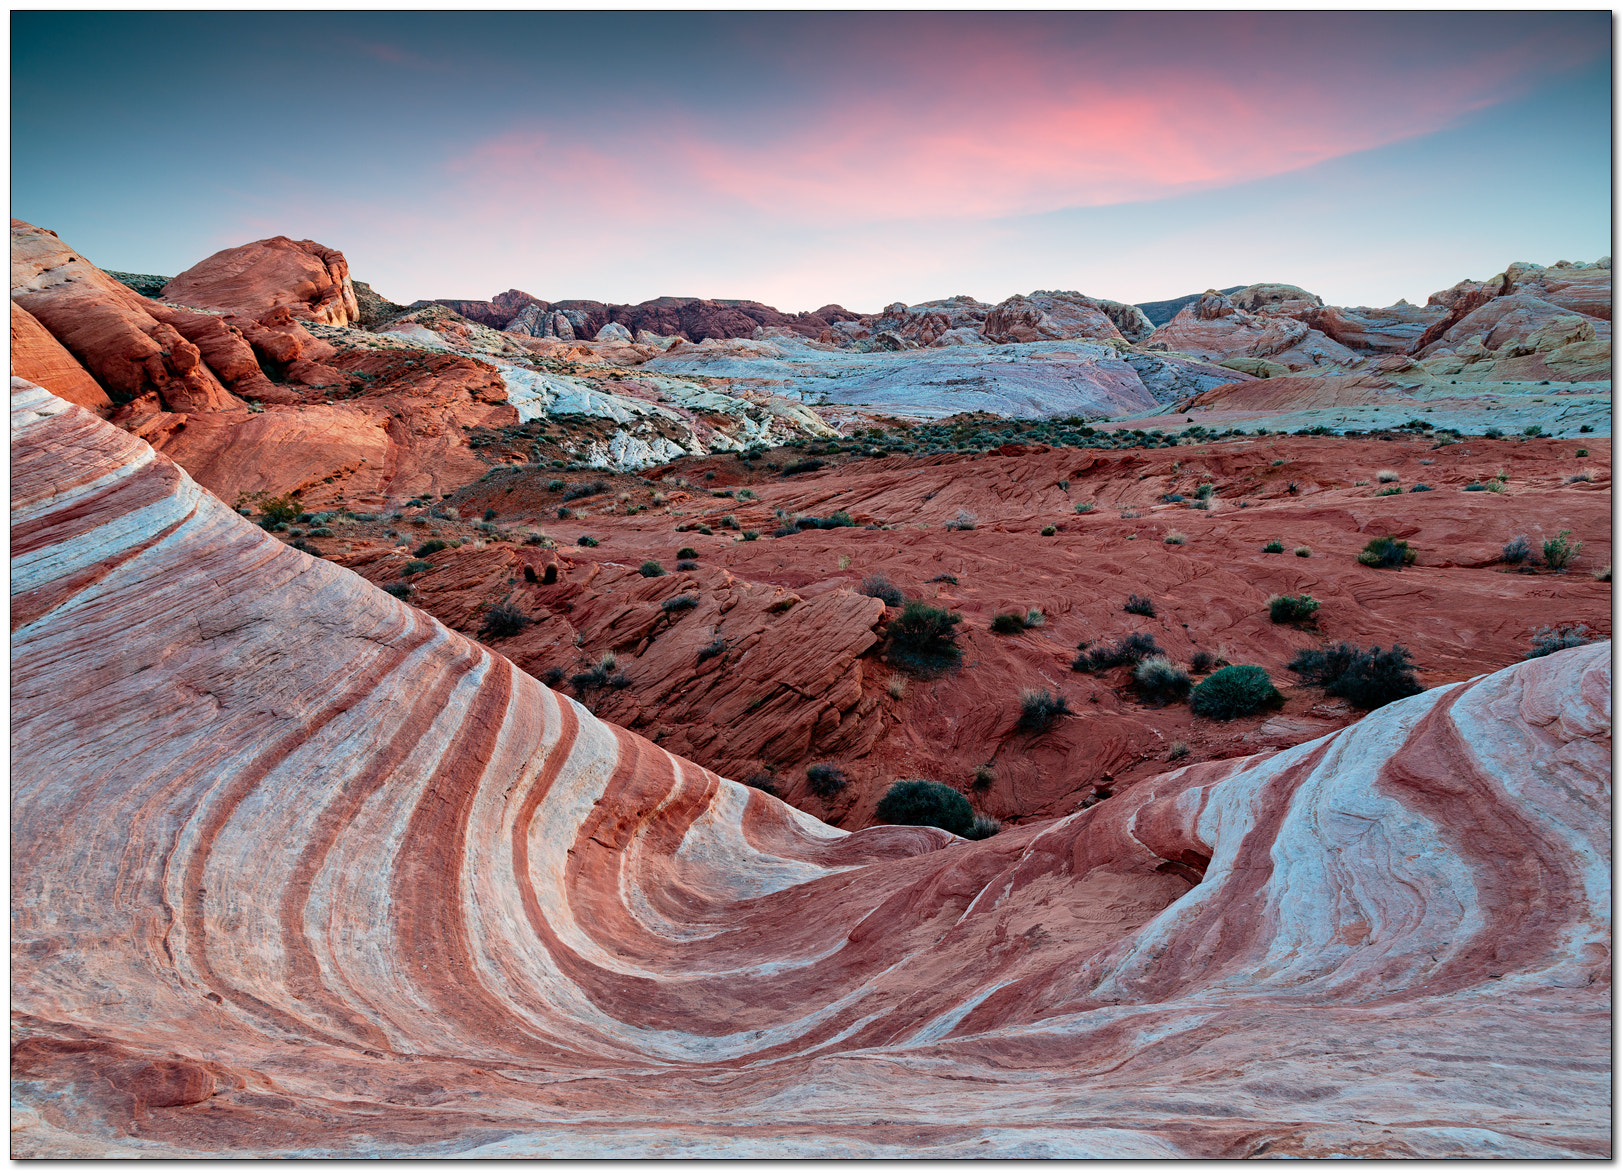 Photograph Valley of Fire Wave by Jameel Hyder on 500px